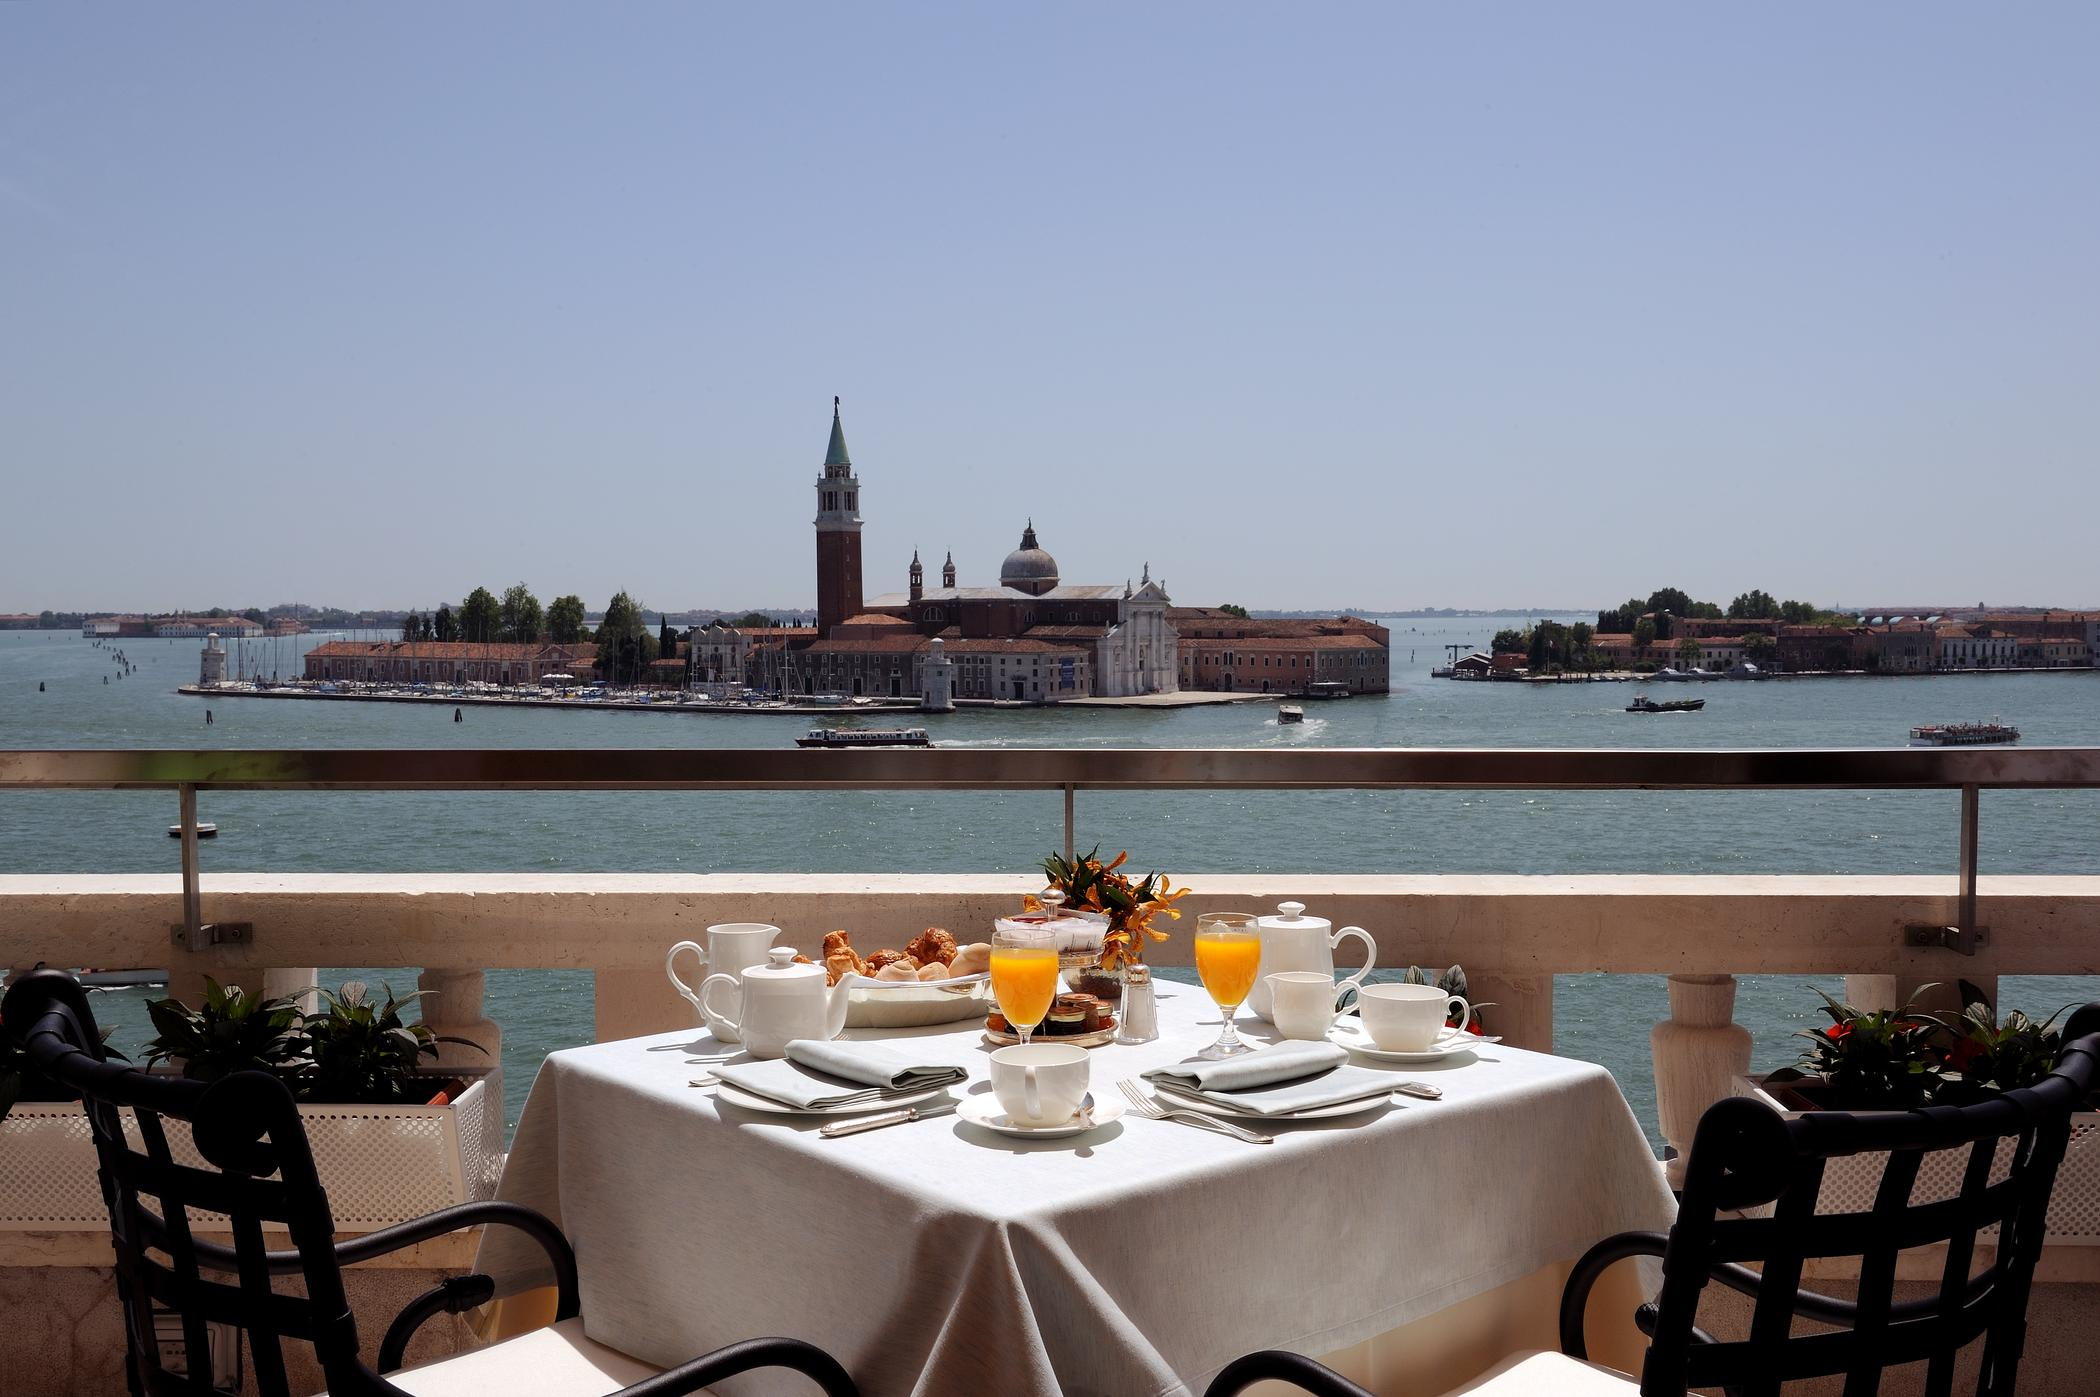 Restaurant terrazza danieli from photo gallery for hotel for Terrazza panoramica venezia